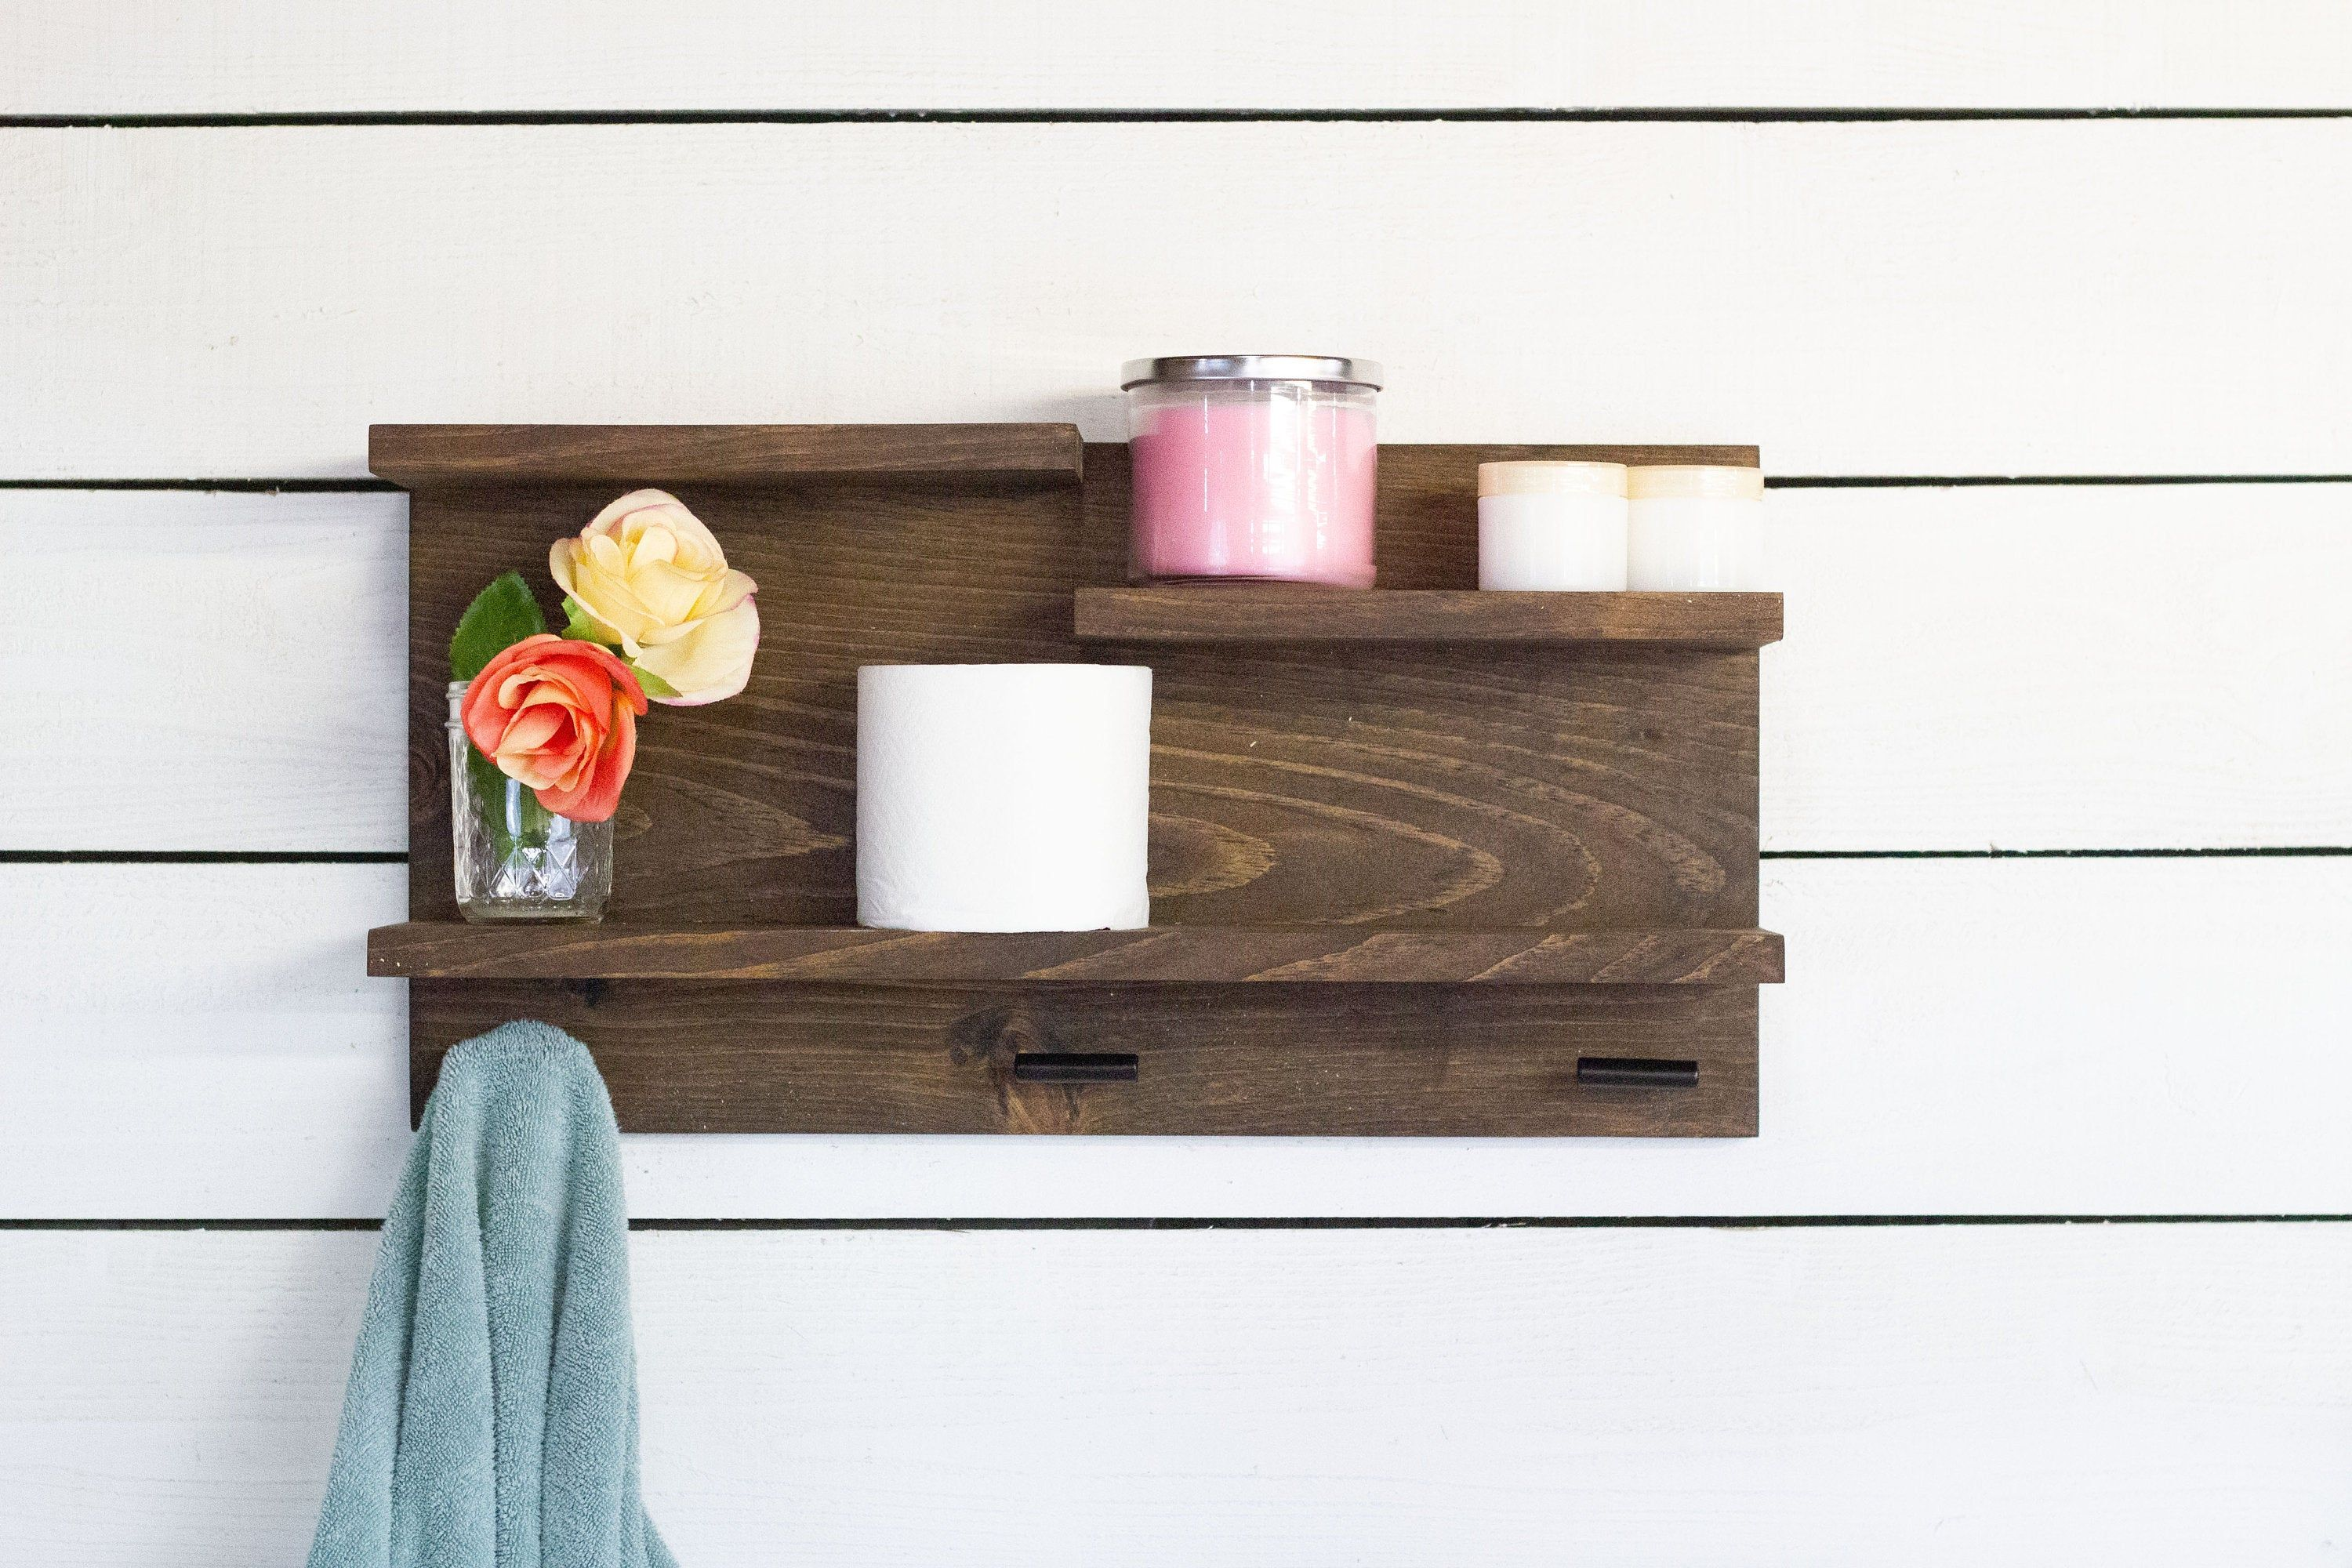 Bathroom Wall Shelf With Towel Hooks Etsy Bathroom Wall Shelves Wall Shelves Shelves